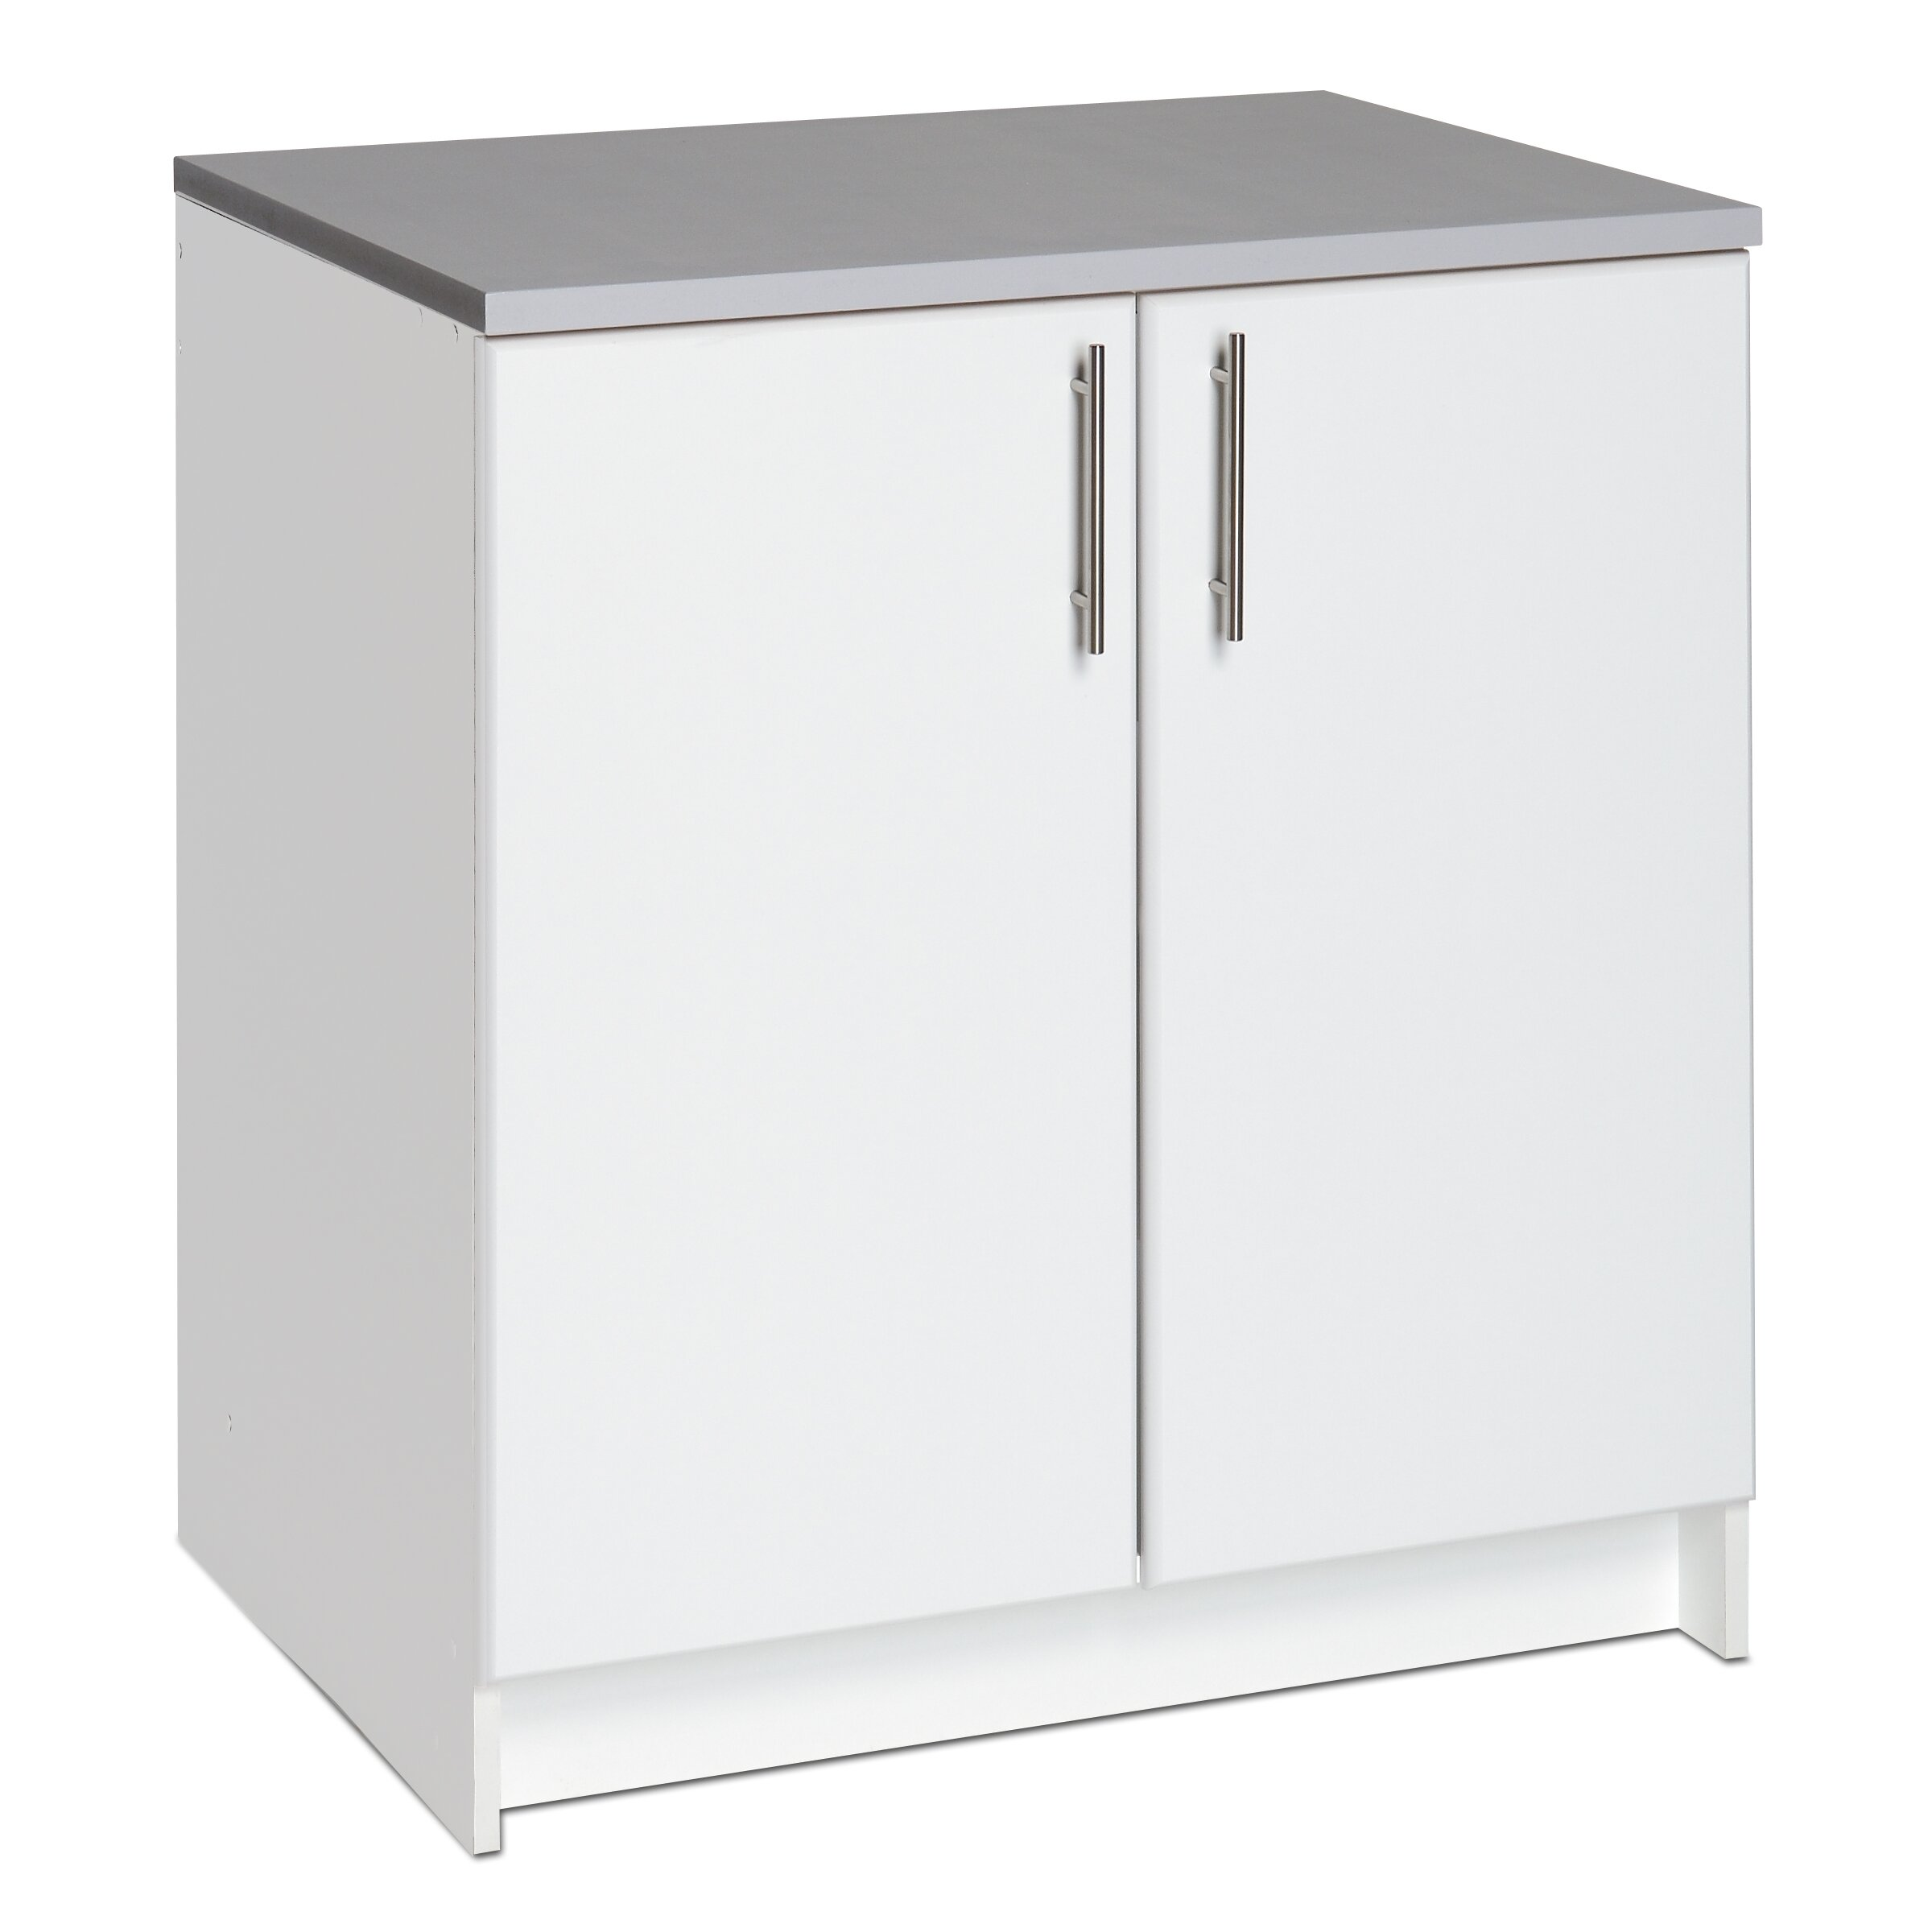 Inch Base Sink Cabinet Kitchen